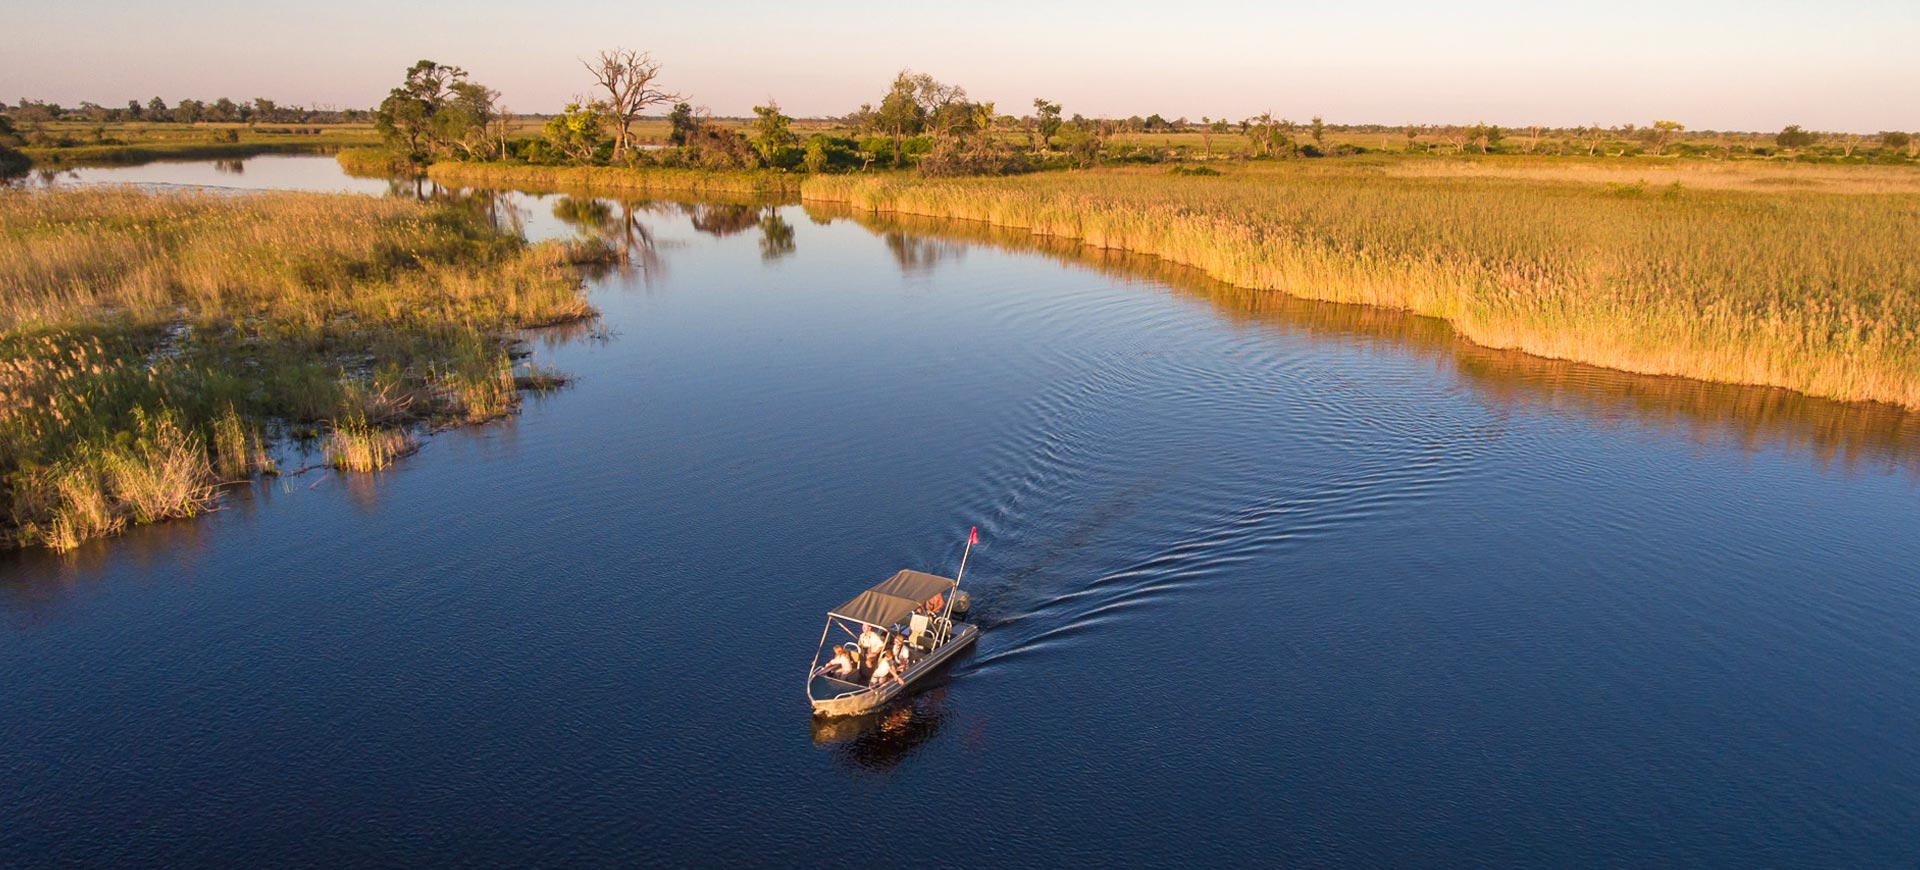 Okavango River Cruise